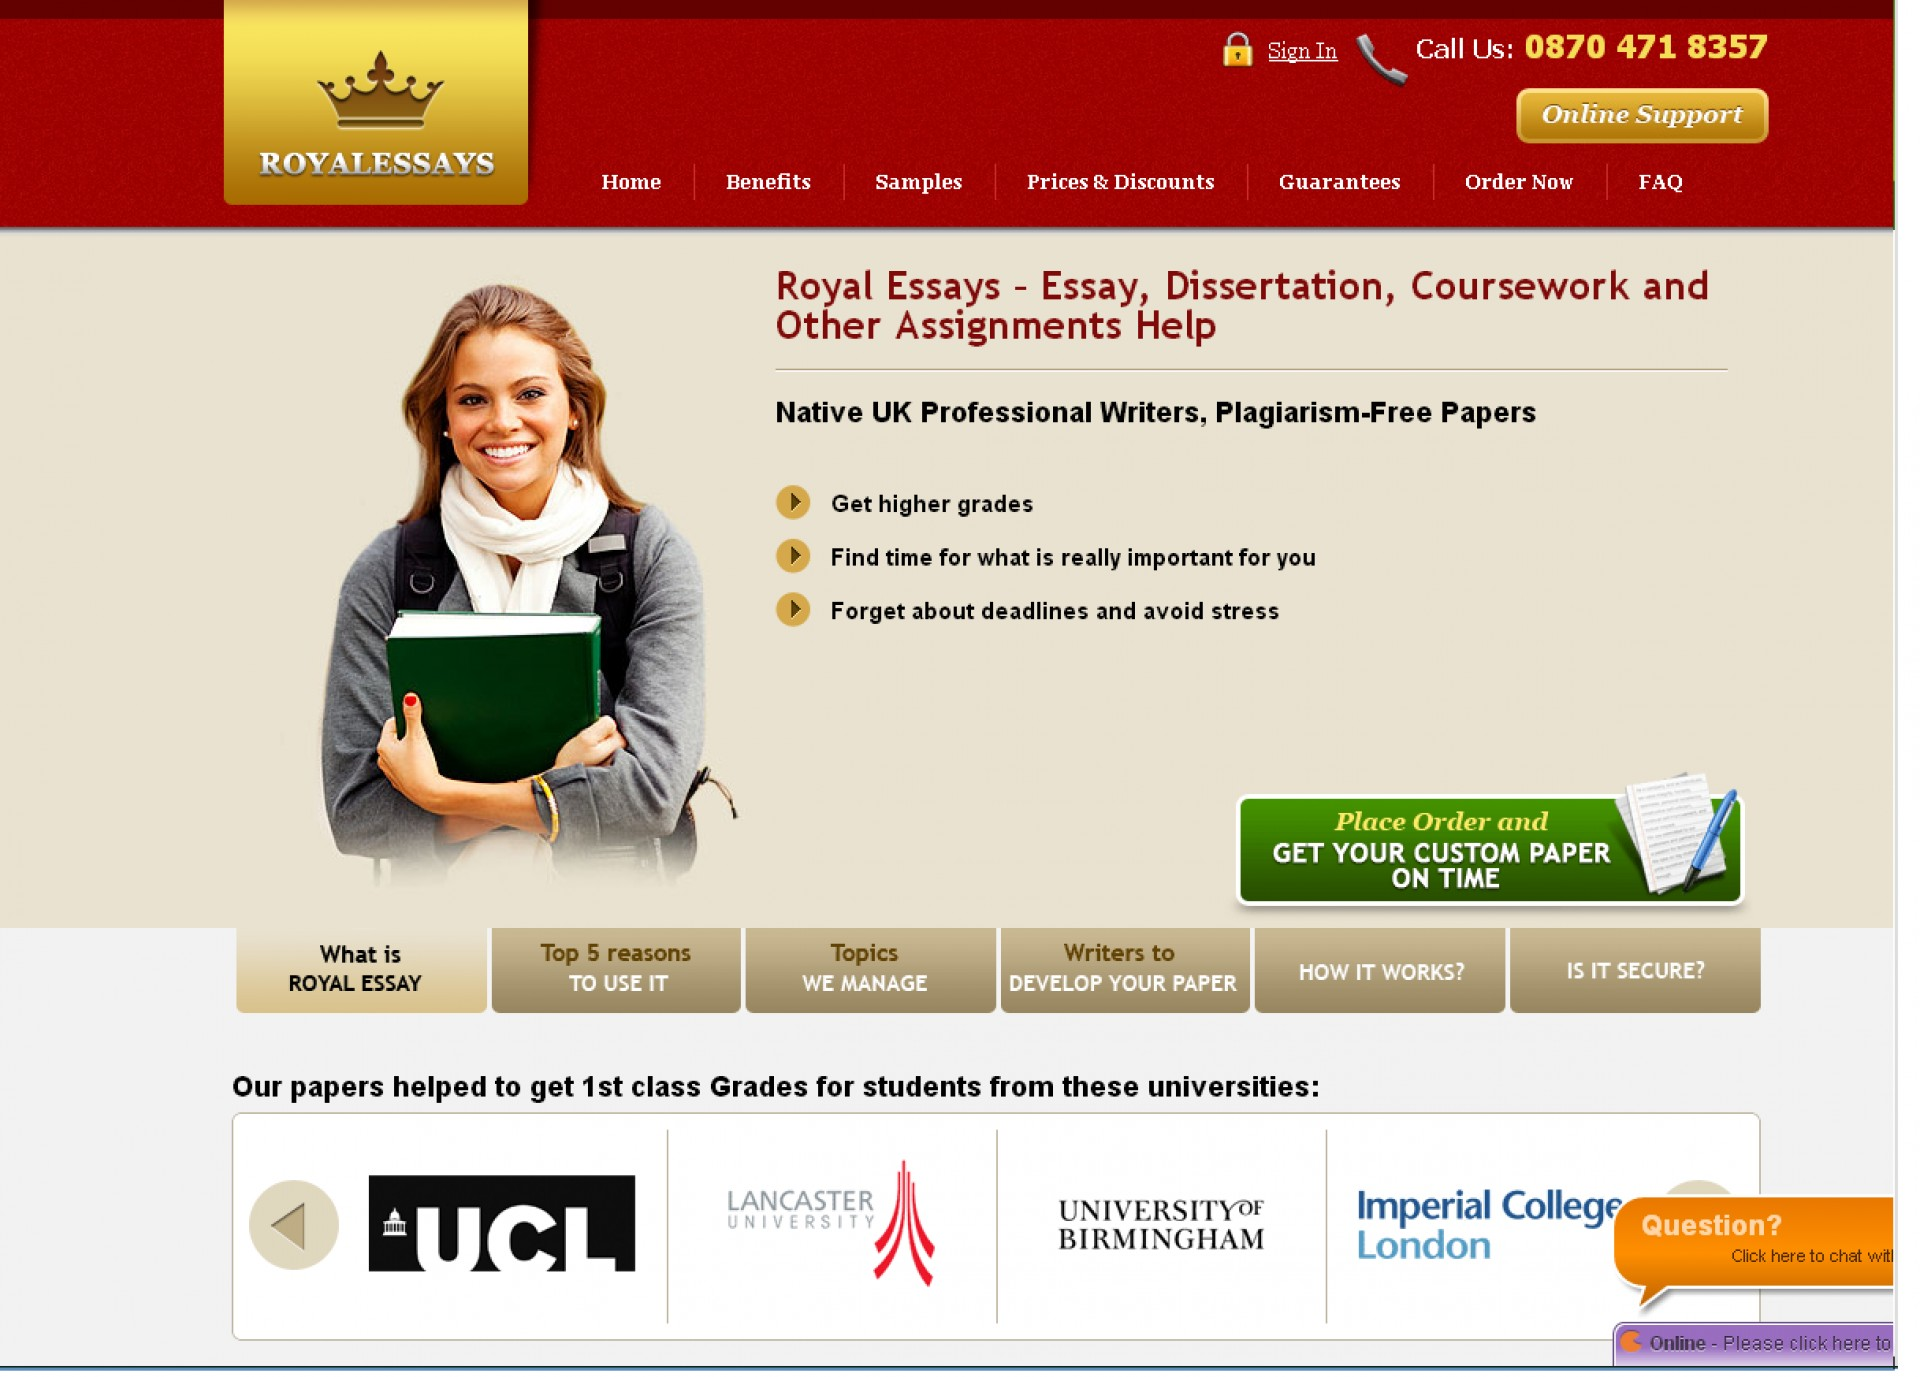 021 Custom Essay Writing Service Royalessays Co Uk Review Impressive Reviews In India Services Australia 1920